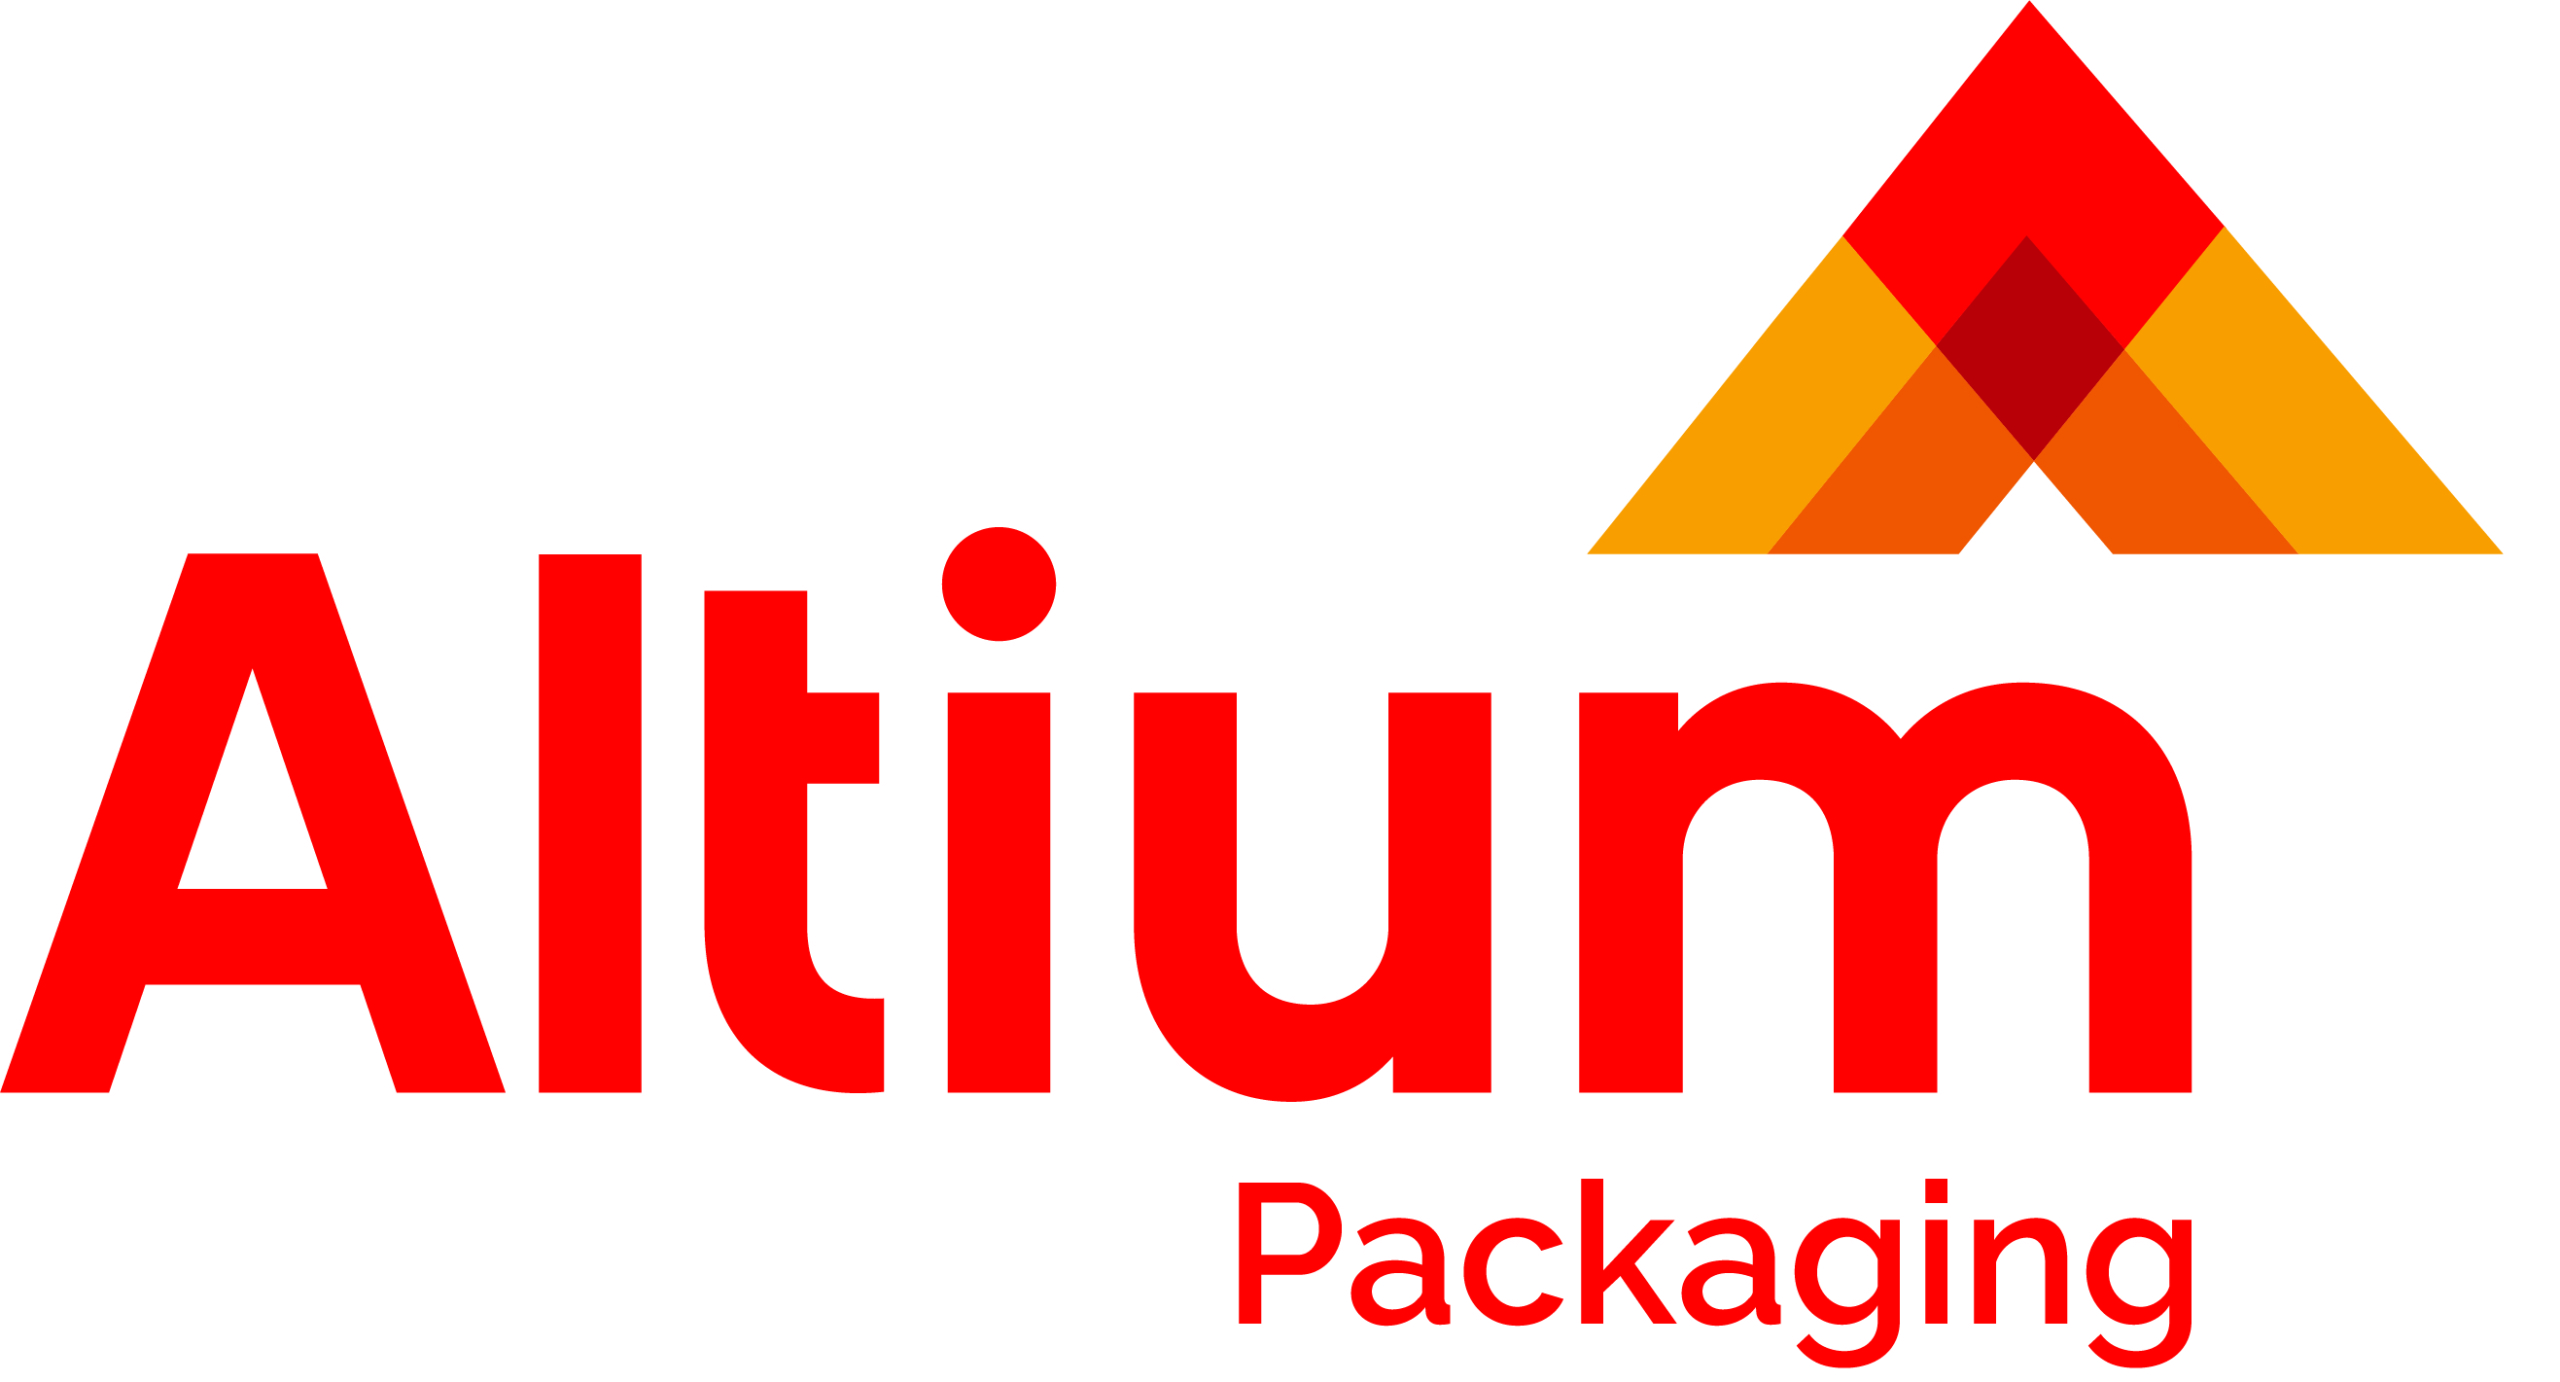 Altium Packaging 4 Colors Scaled 1, Bottled Water | IBWA | Bottled Water